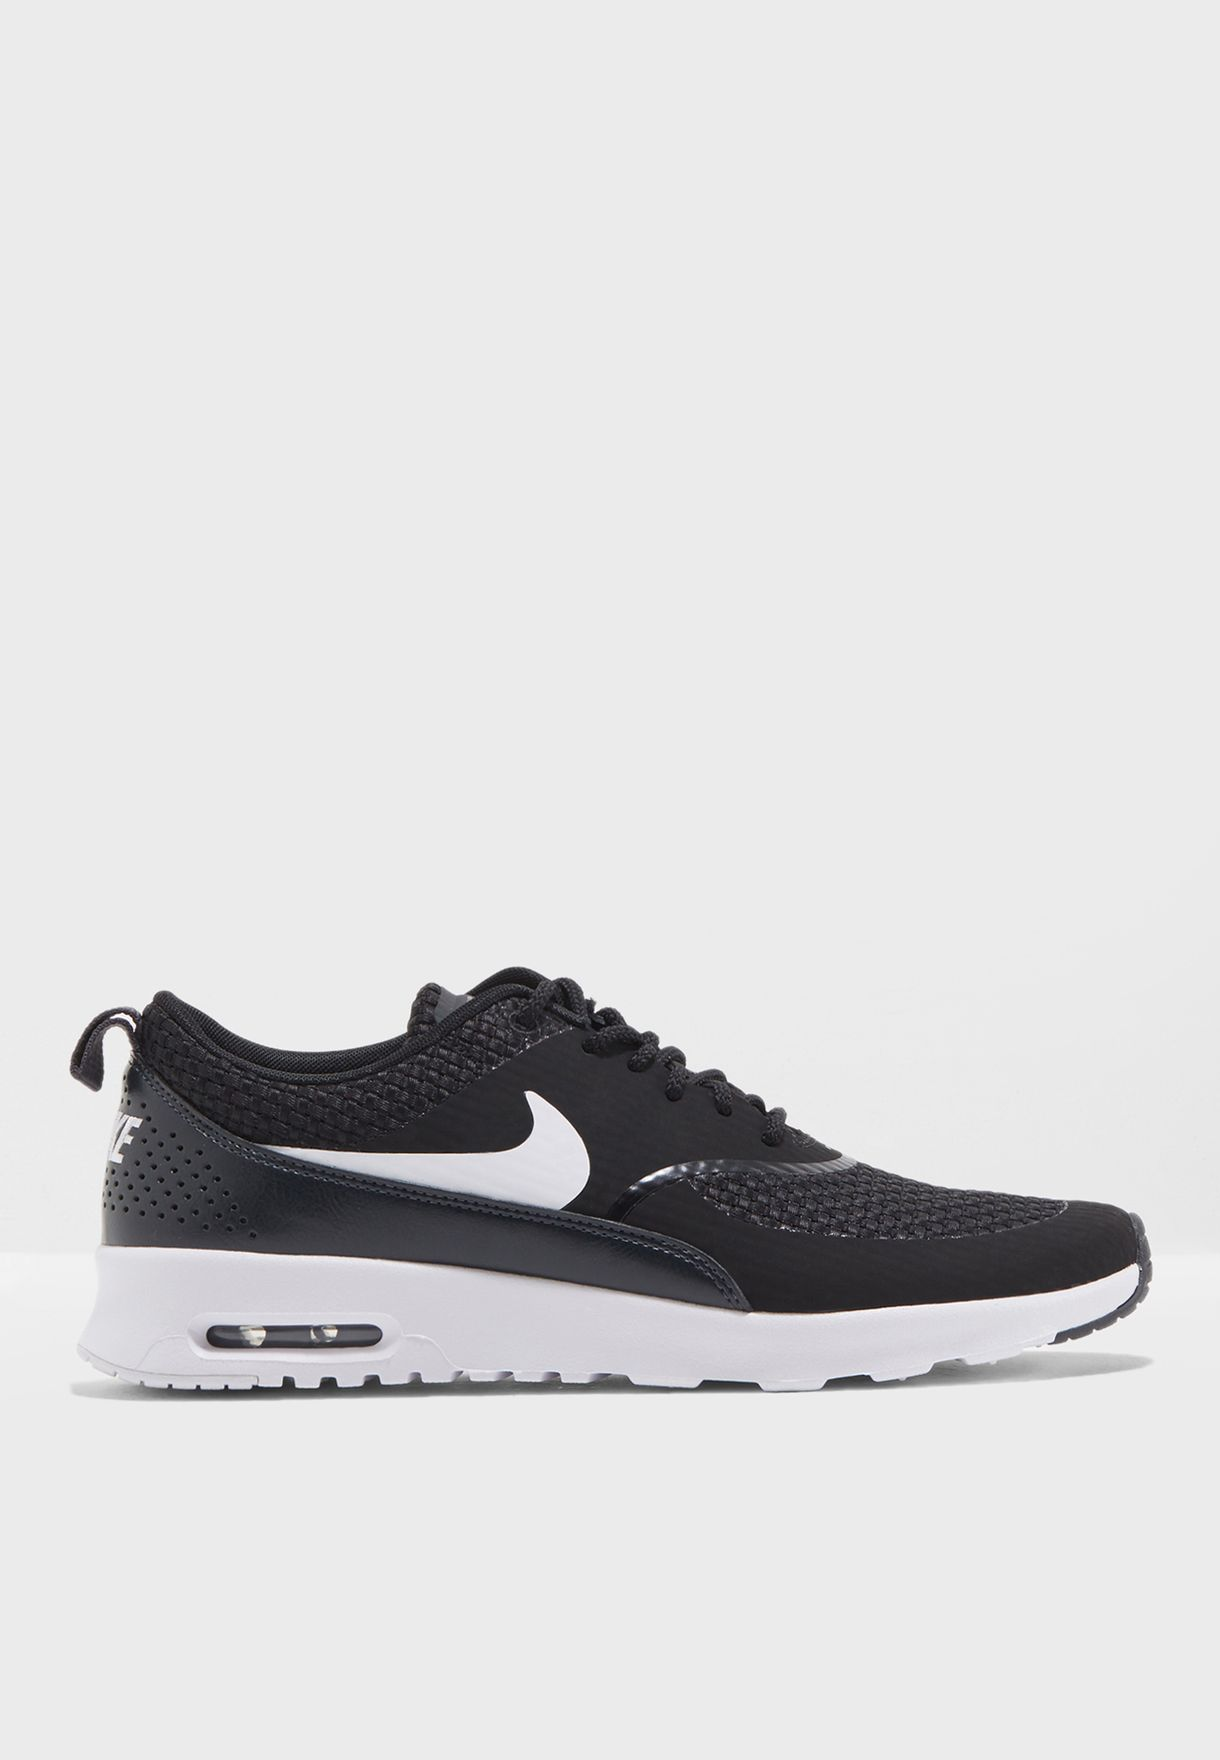 best website c5902 e5857 Air Max Thea Premium